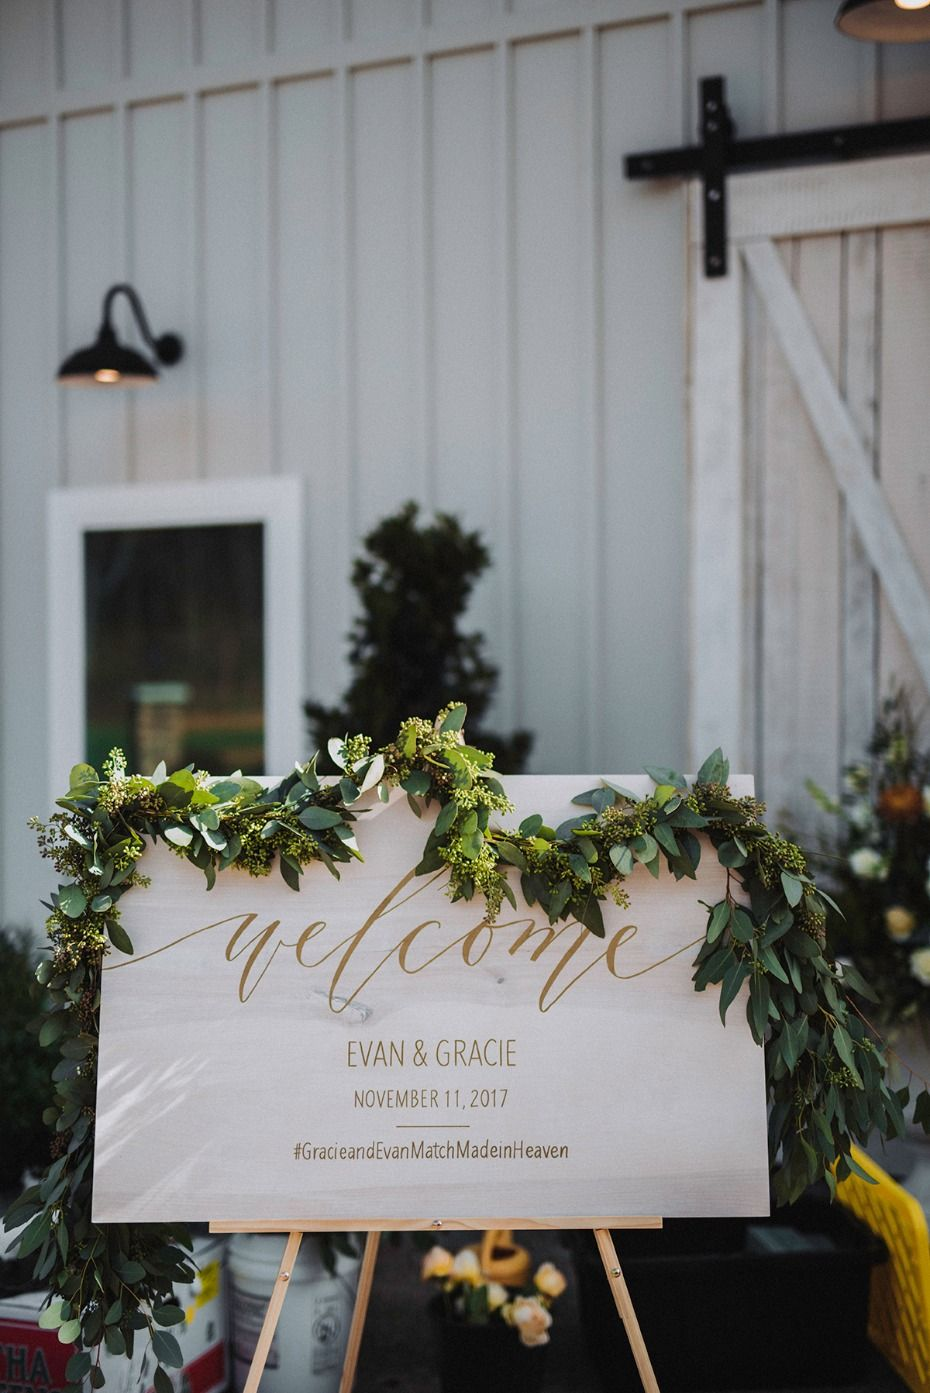 Wedding decorations with flowers november 2018 How To Have A Beautiful Fall Wedding With A Pop Of Yellow  Wedding